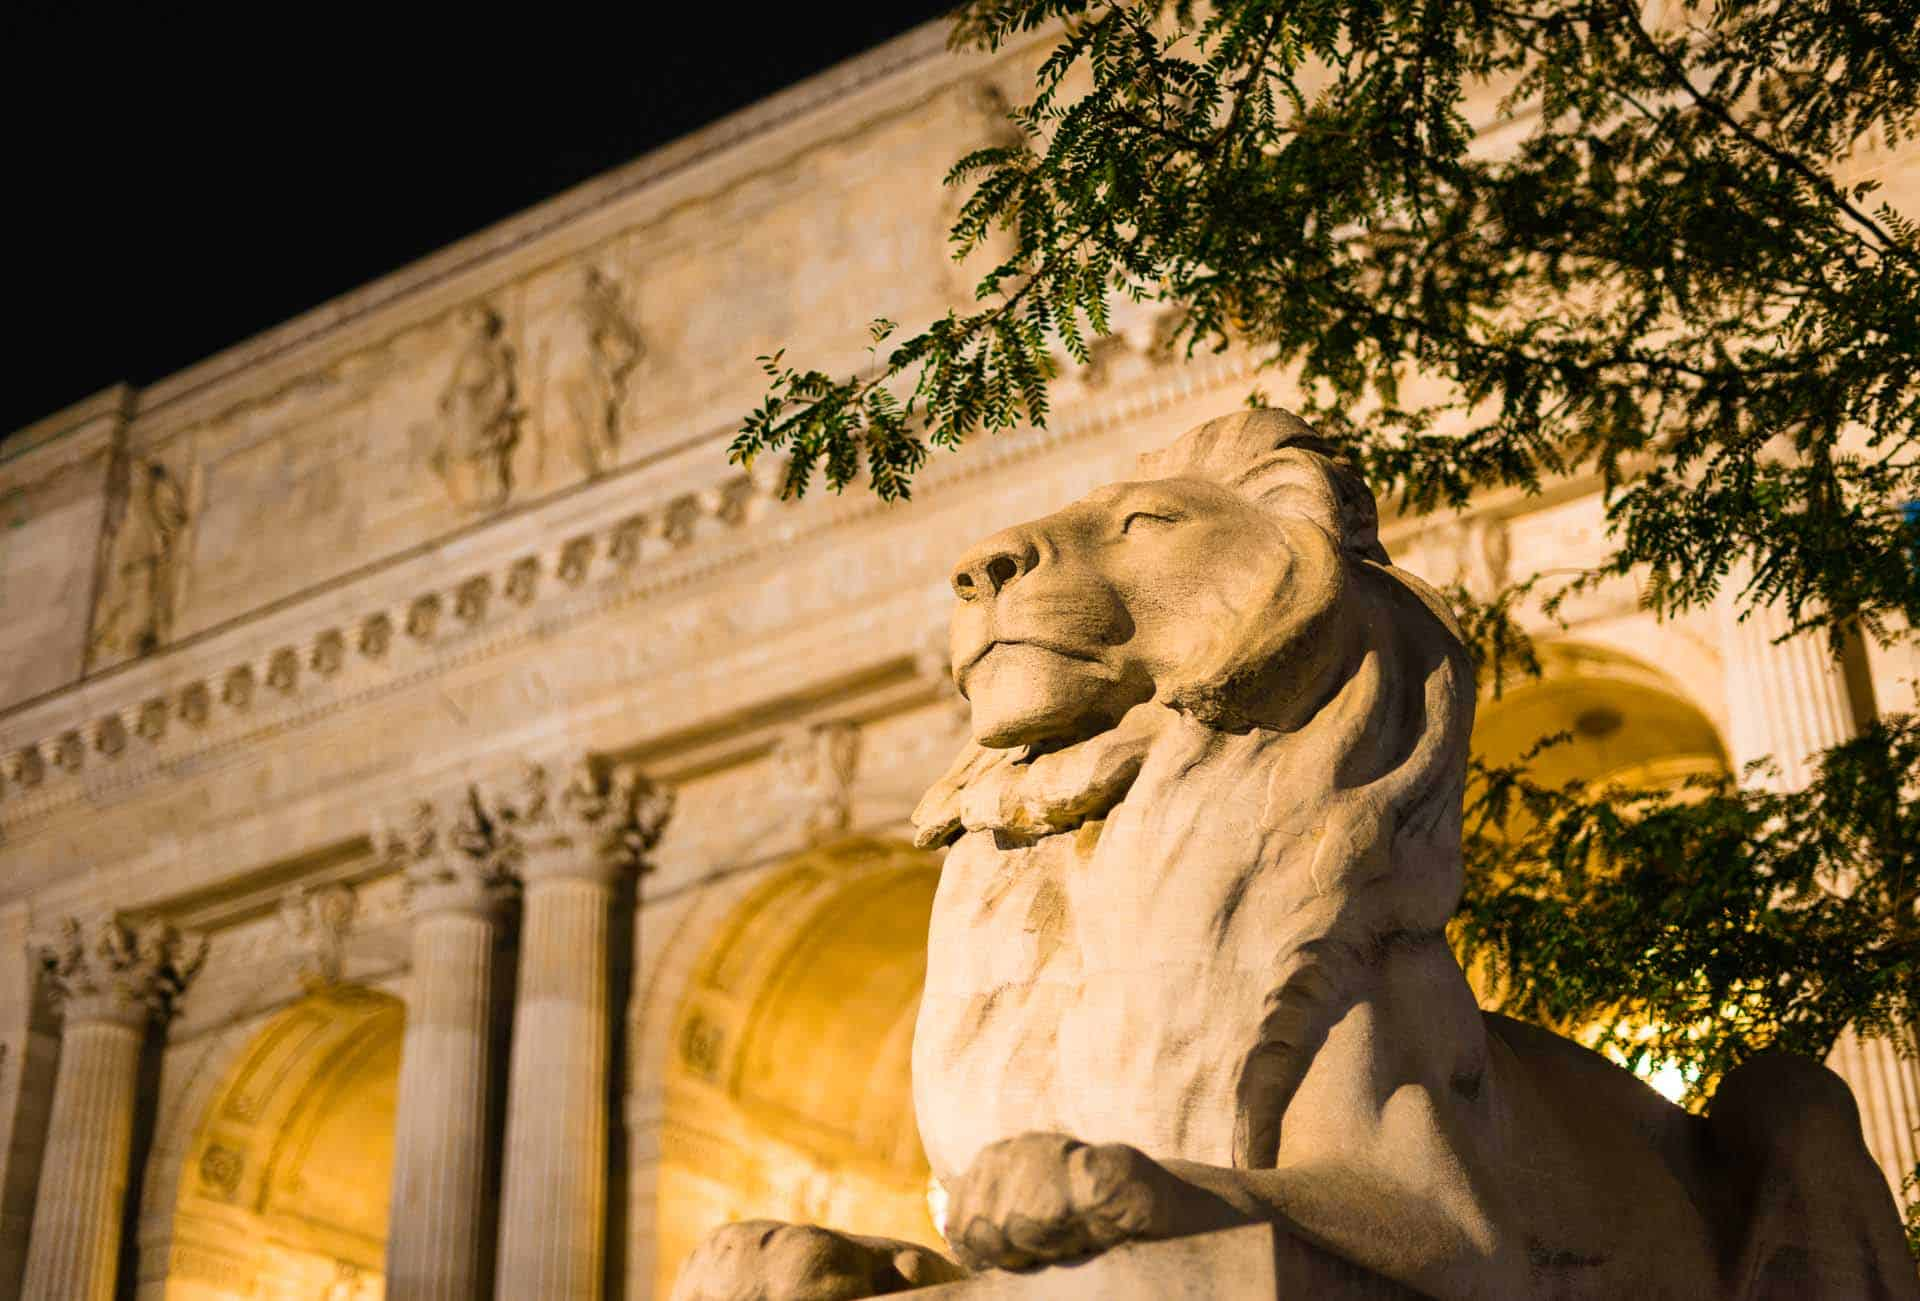 a lion statue in front of the New York Public Library in New York City